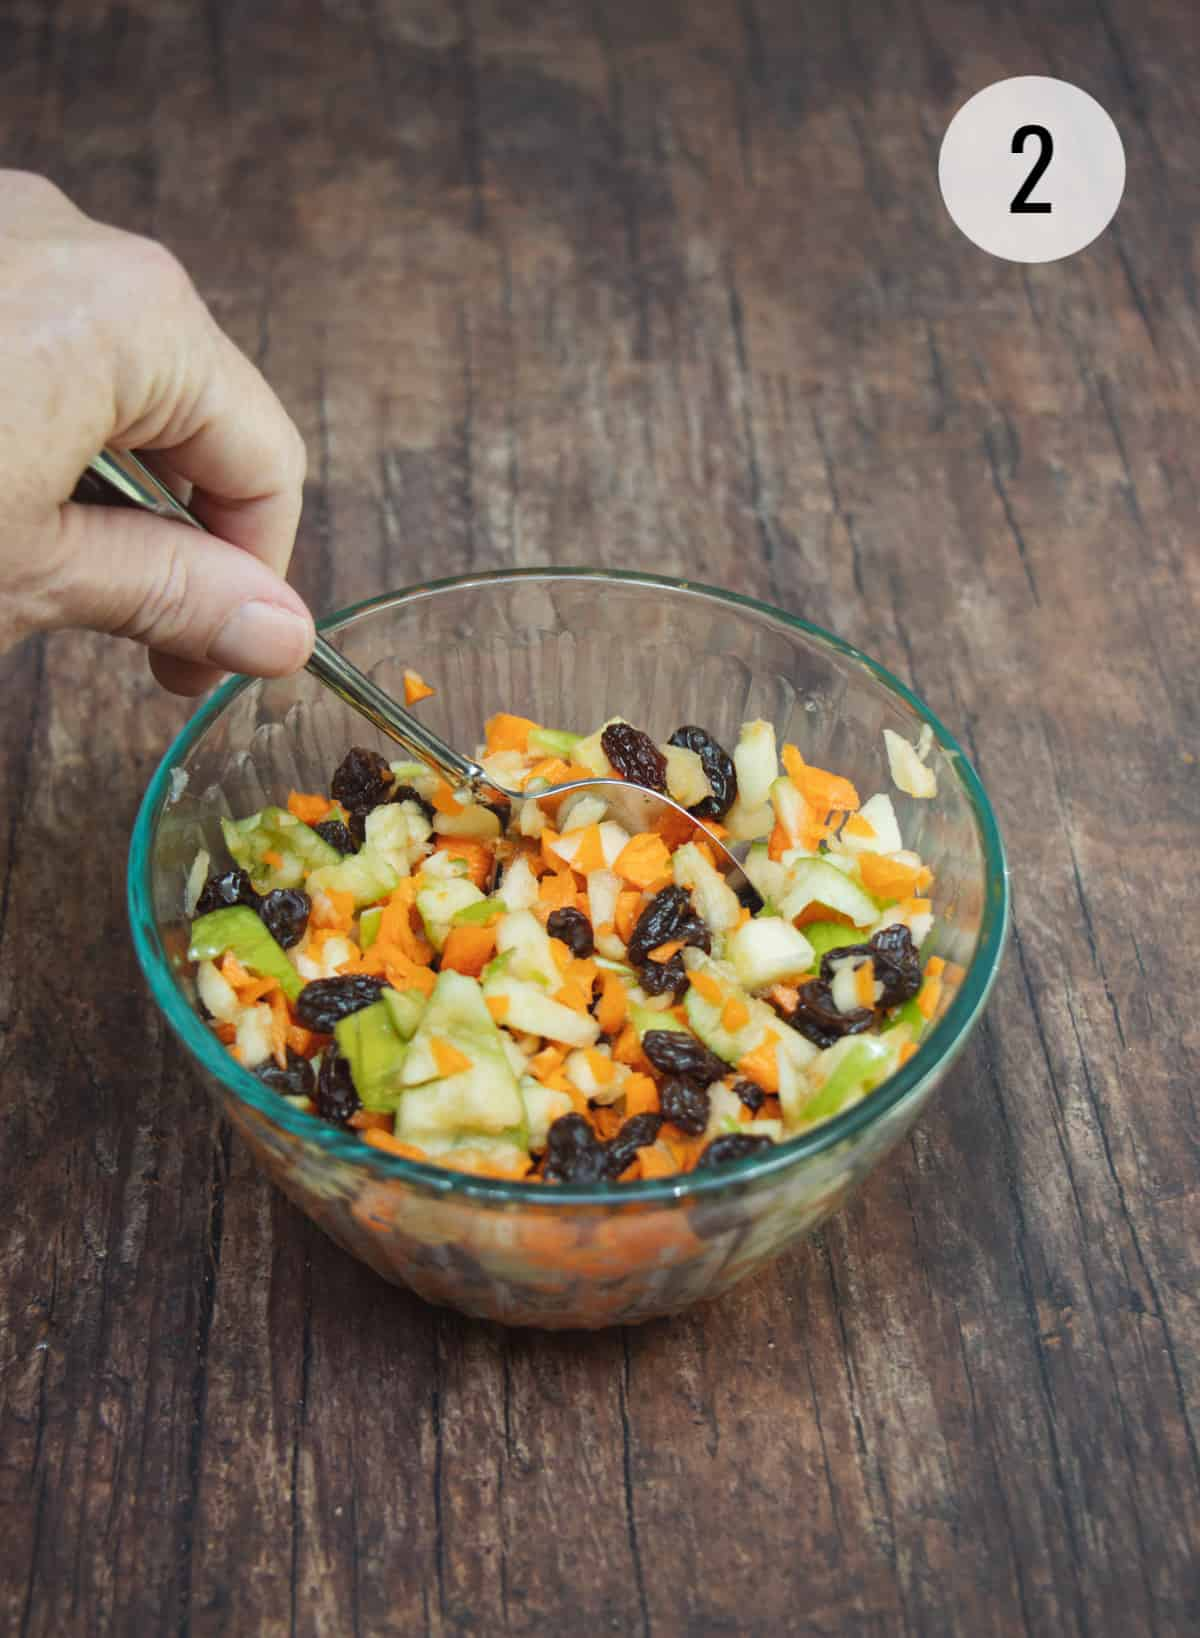 Stirring ingredients for Apple Carrot Salad with Raisins in a small bowl.